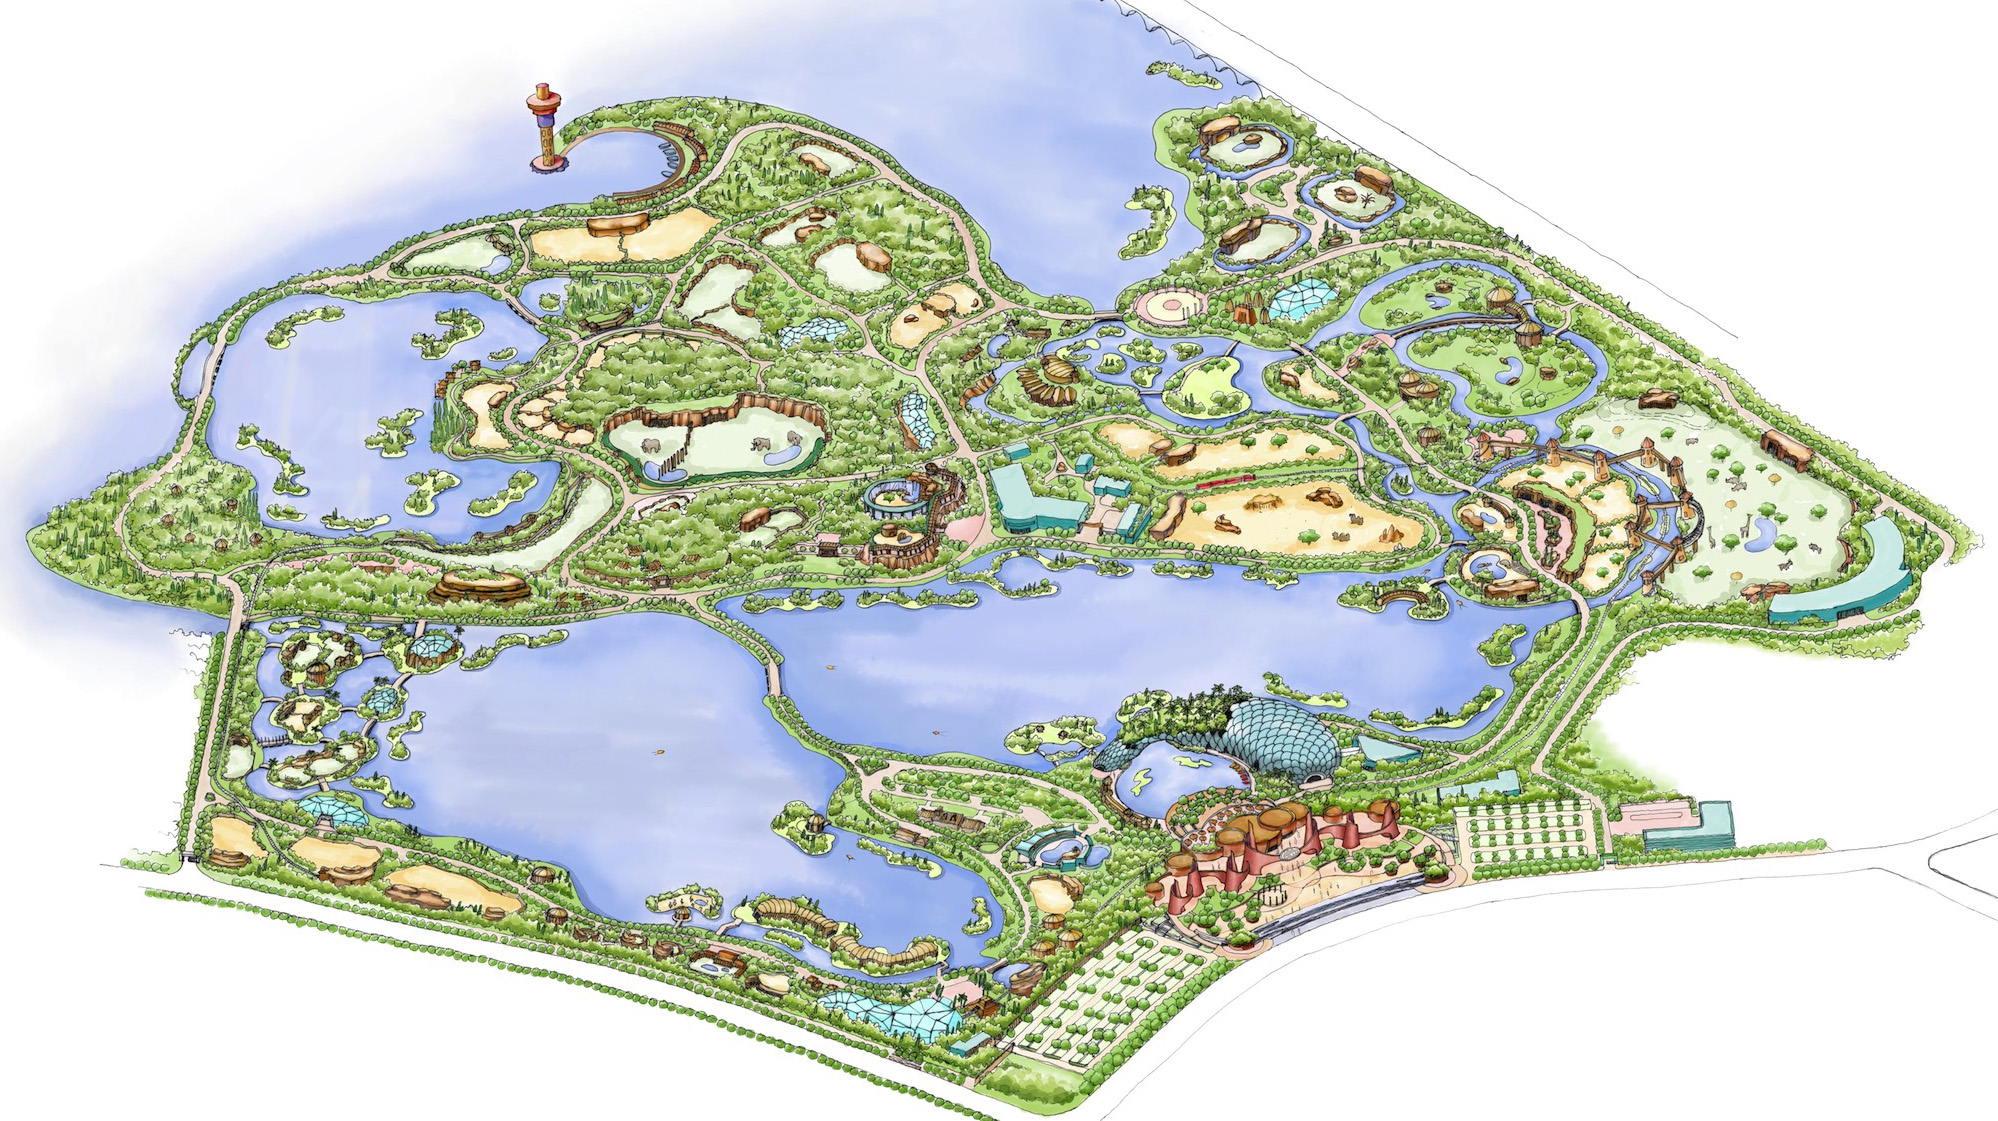 WUHAN ZOO <strong>| Master plan for a whole new wildlife park in China</strong>